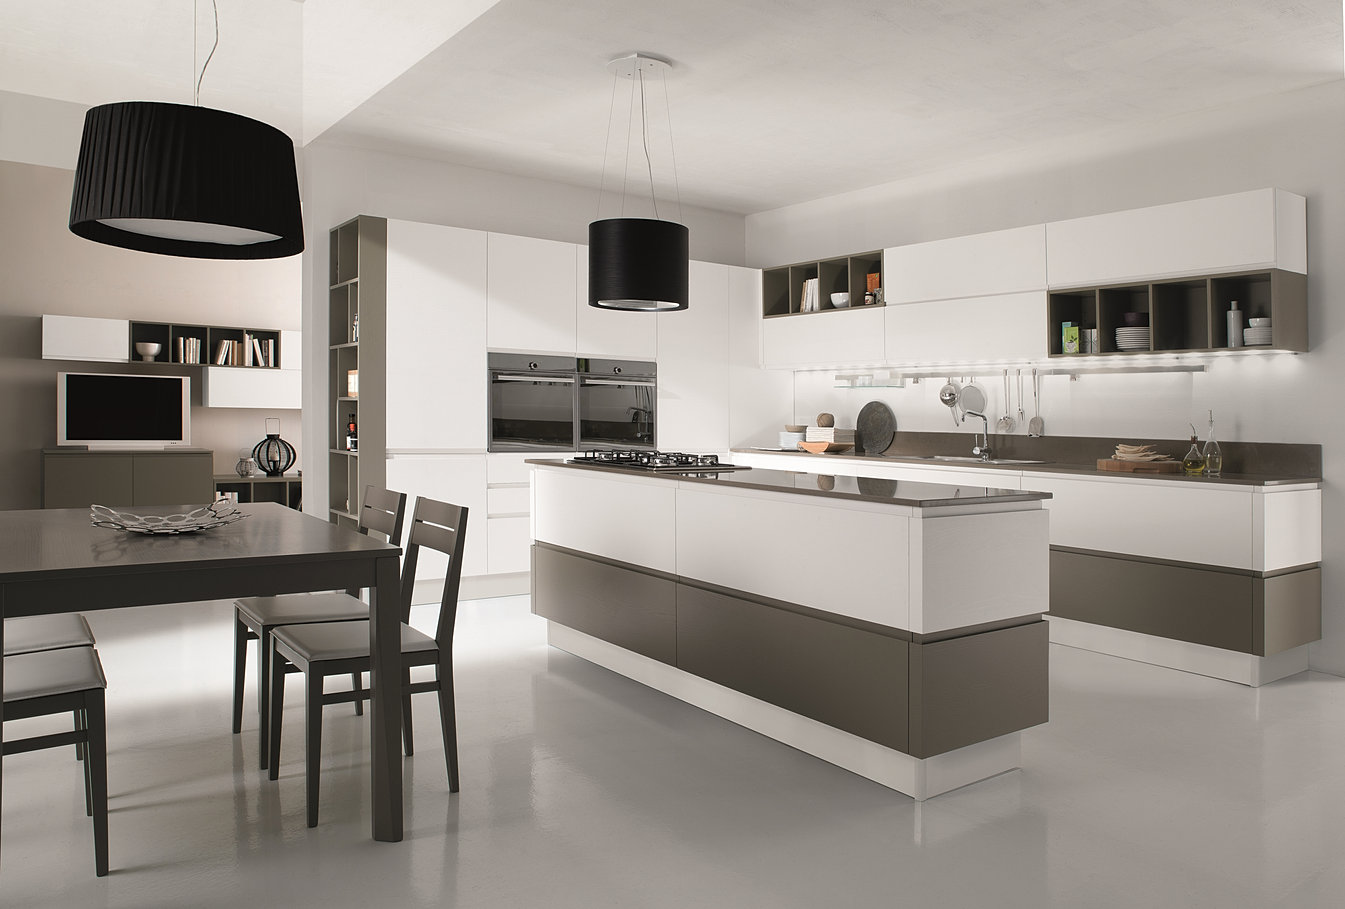 Kitchens Interiors Kitchens Interiors Chennai Bangalore Kochi